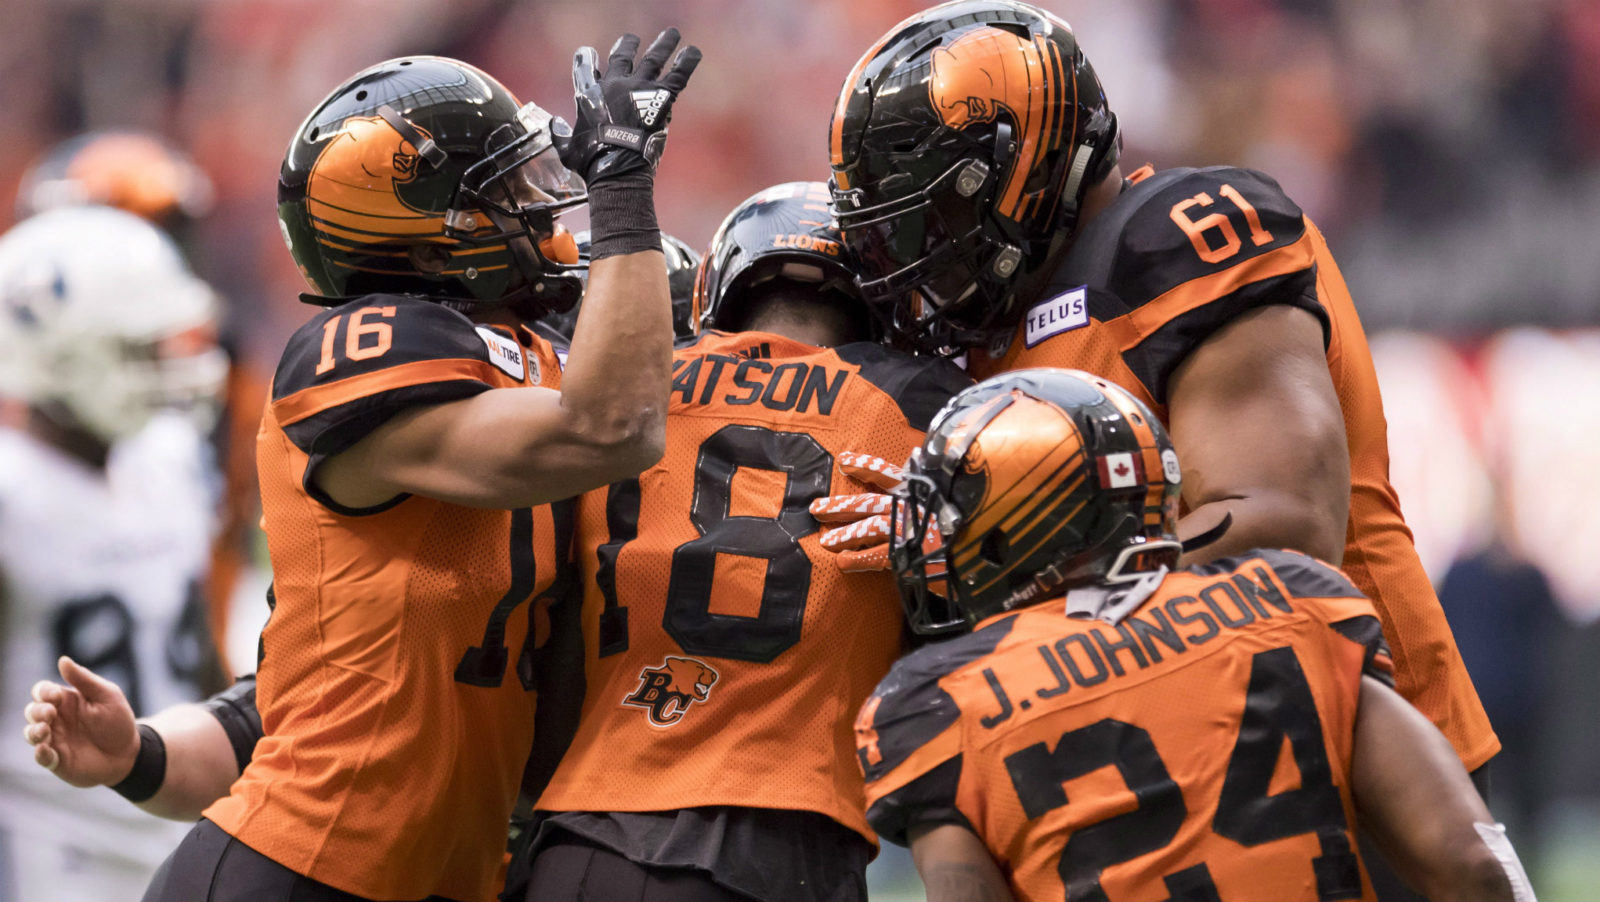 Wild West: The CFL playoffs are shaping up